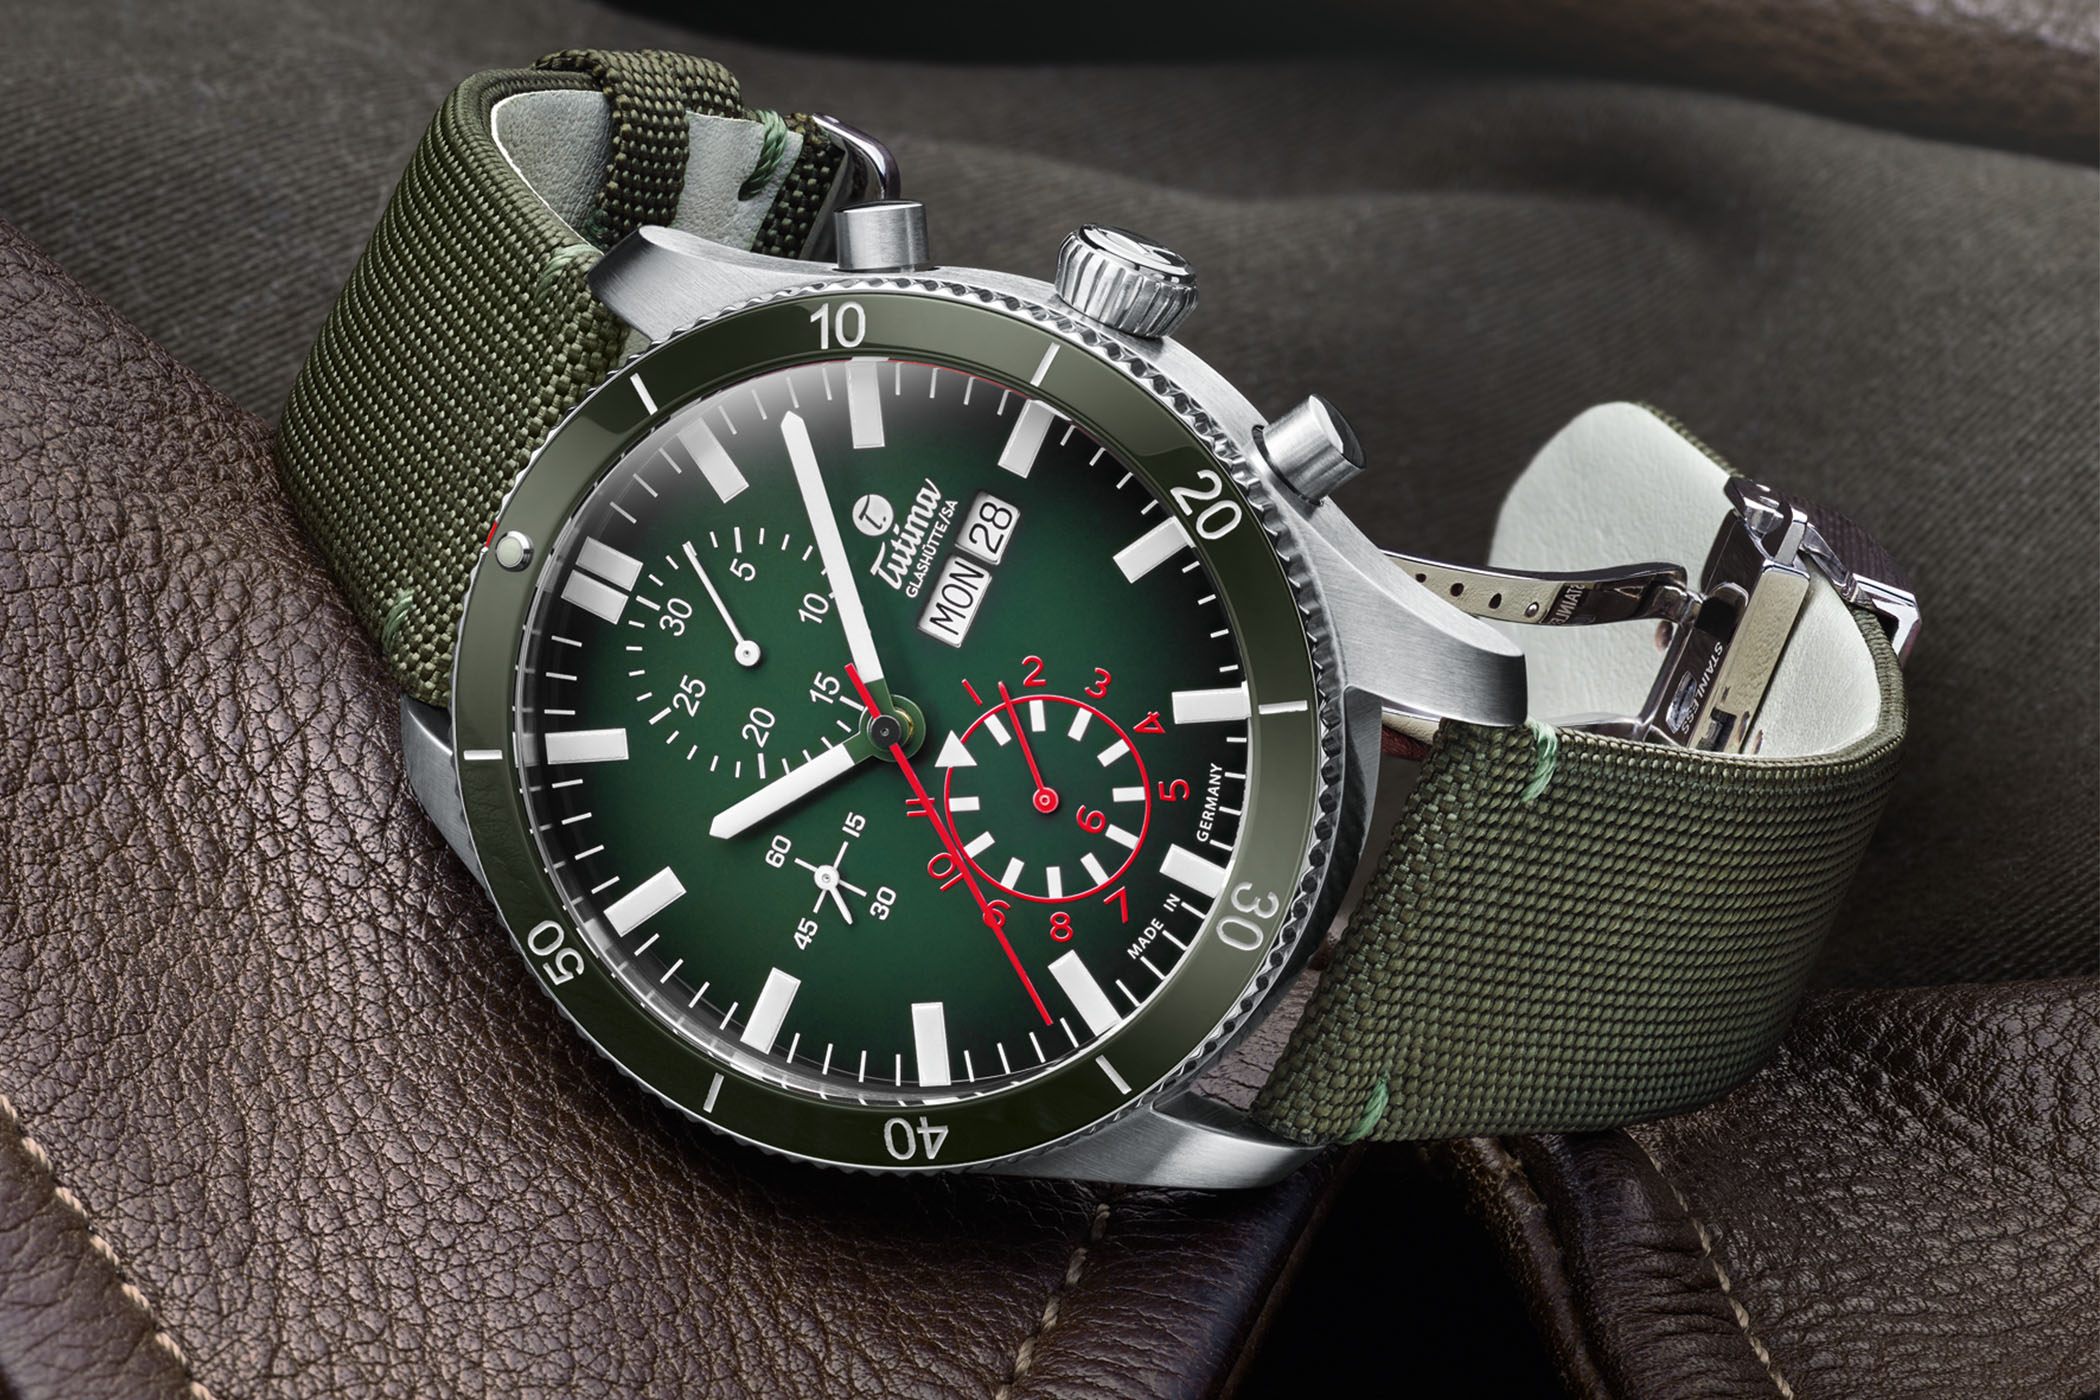 Tutima Grand Flieger Airport Chronograph Ceramic Bezel